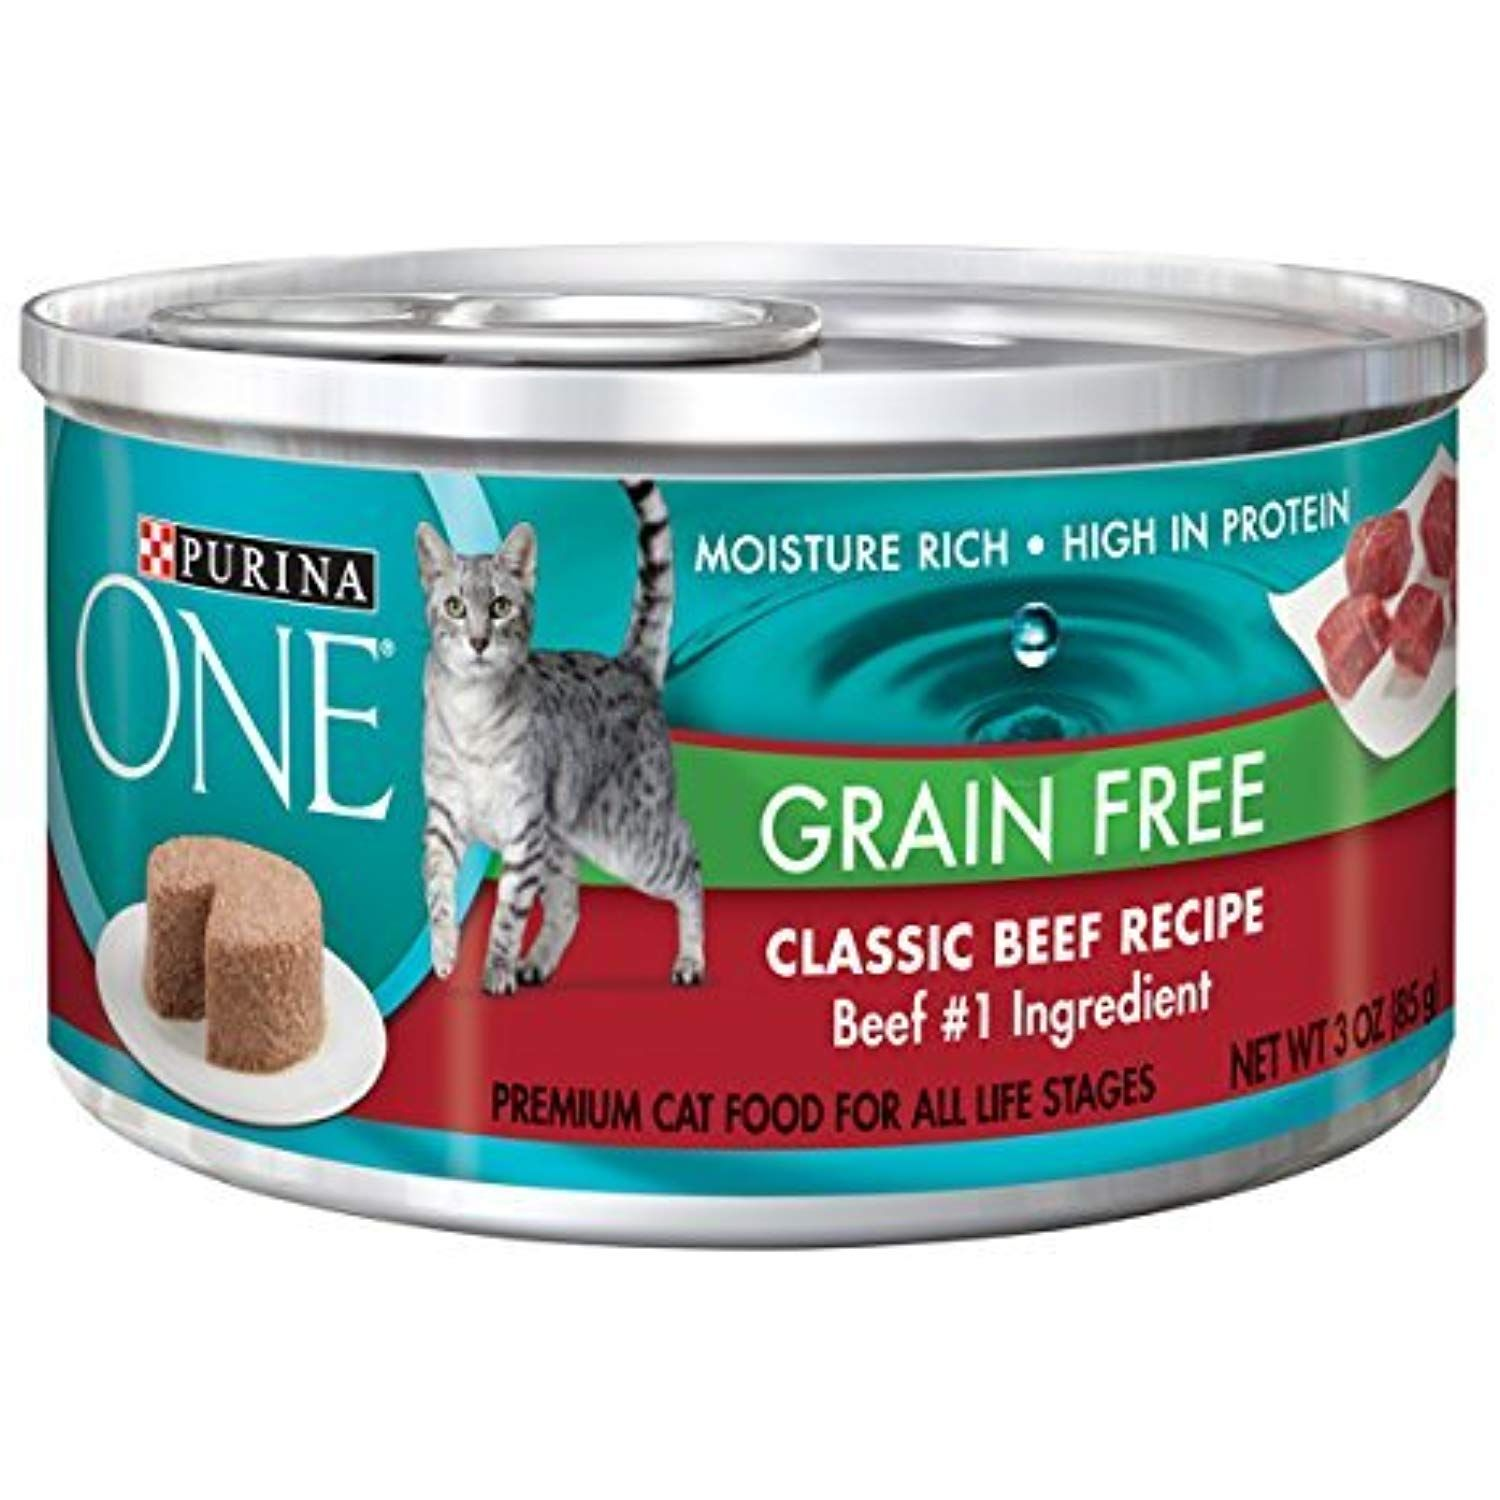 Purina ONE Grain Free Formula Wet Cat Food, Premium Pate